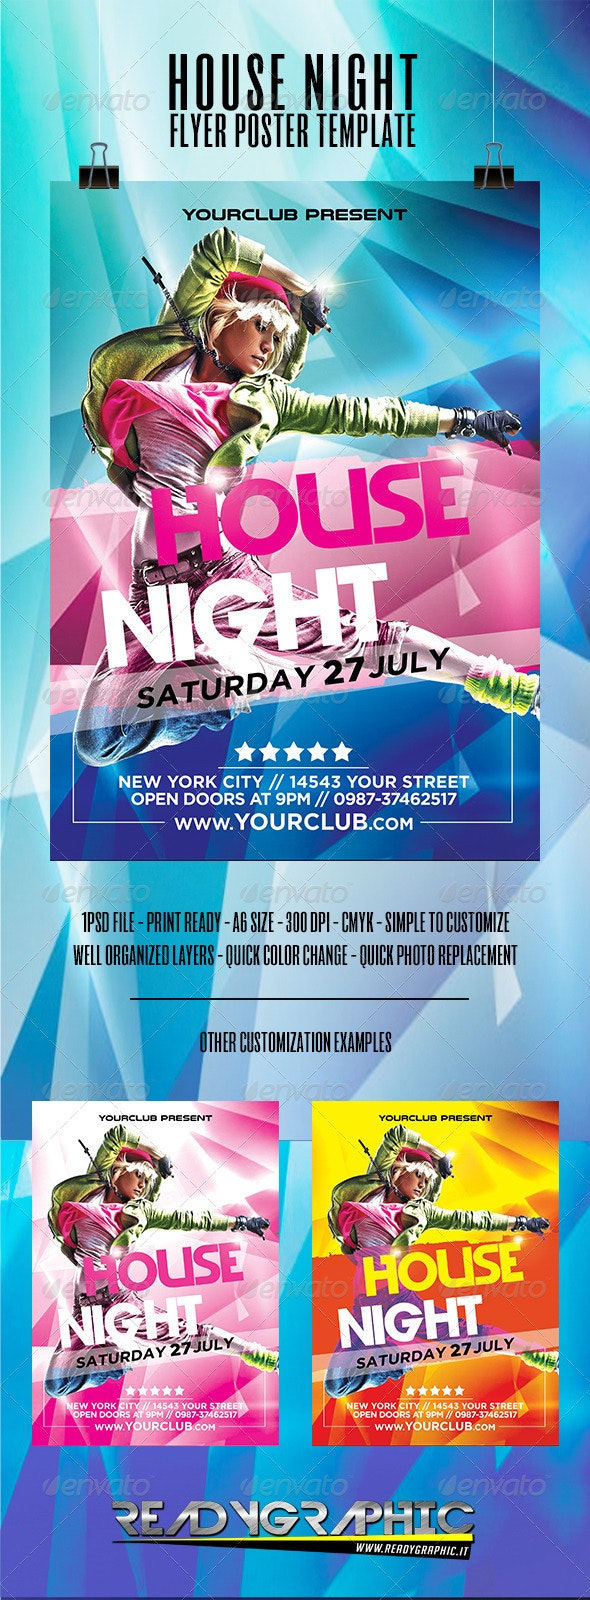 House Night Flyer Poster Template - Clubs & Parties Events